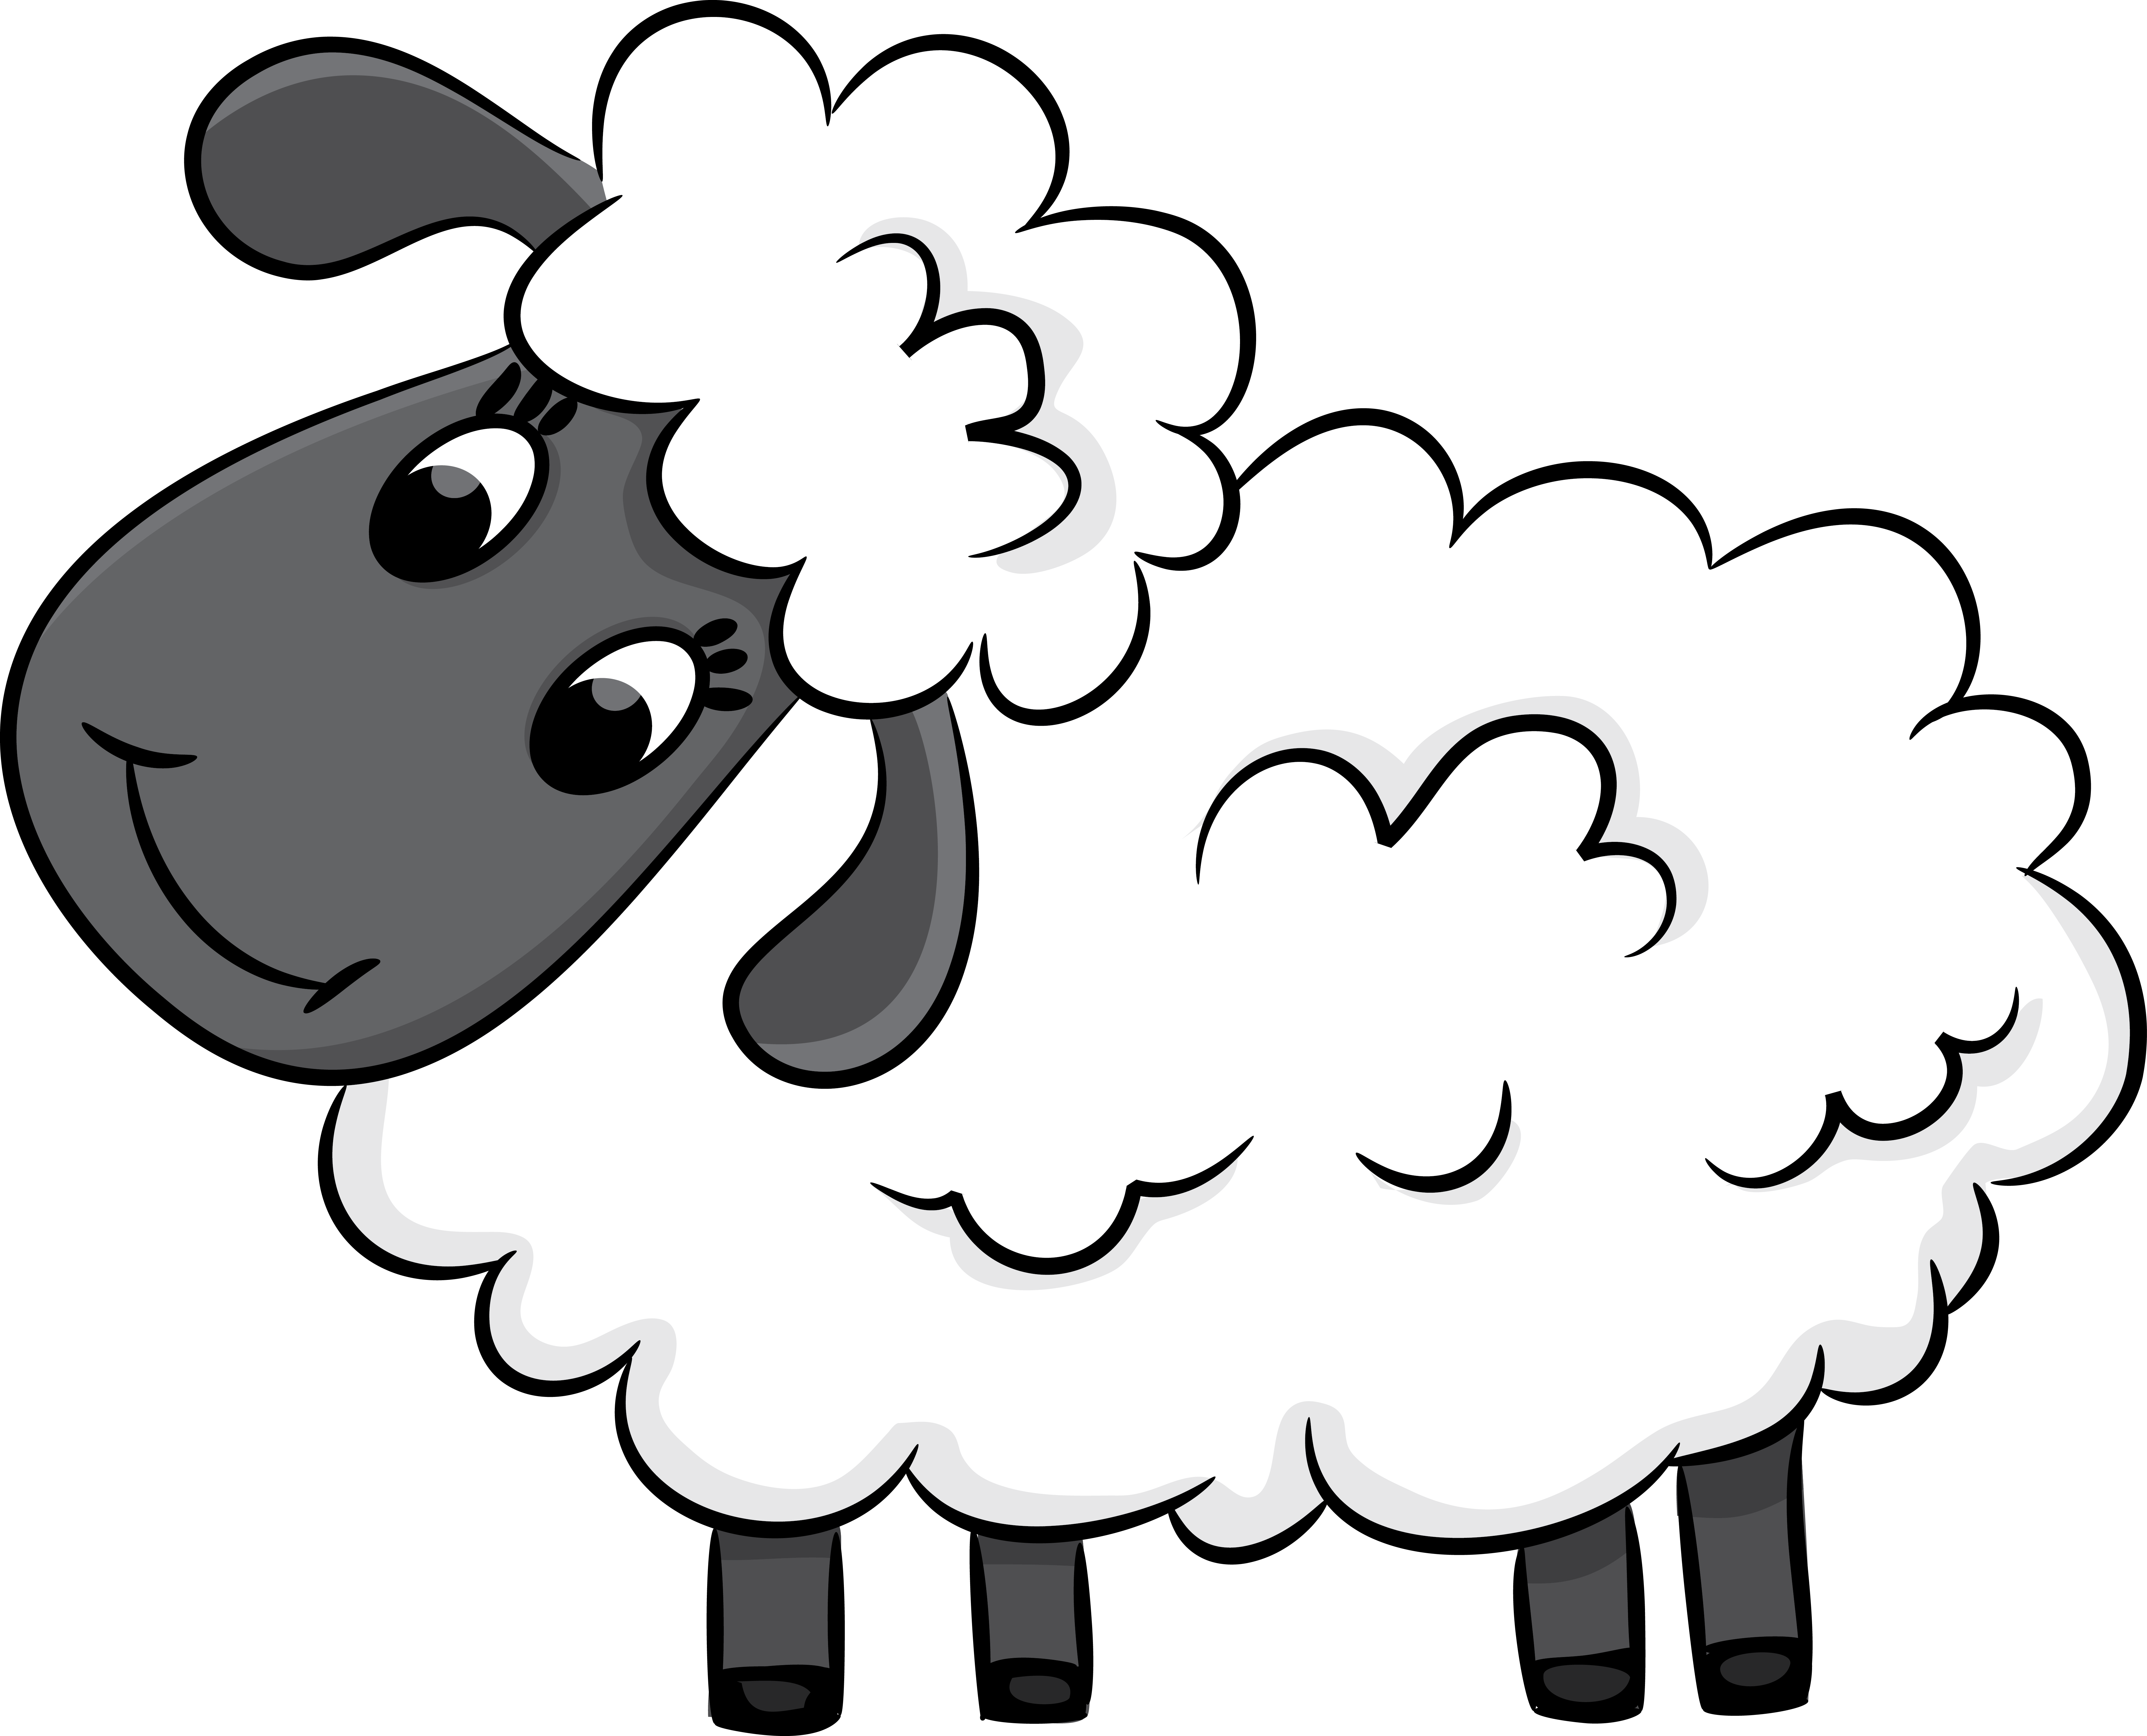 Drawing sheep fluffy. Pin by ramco lifestyles